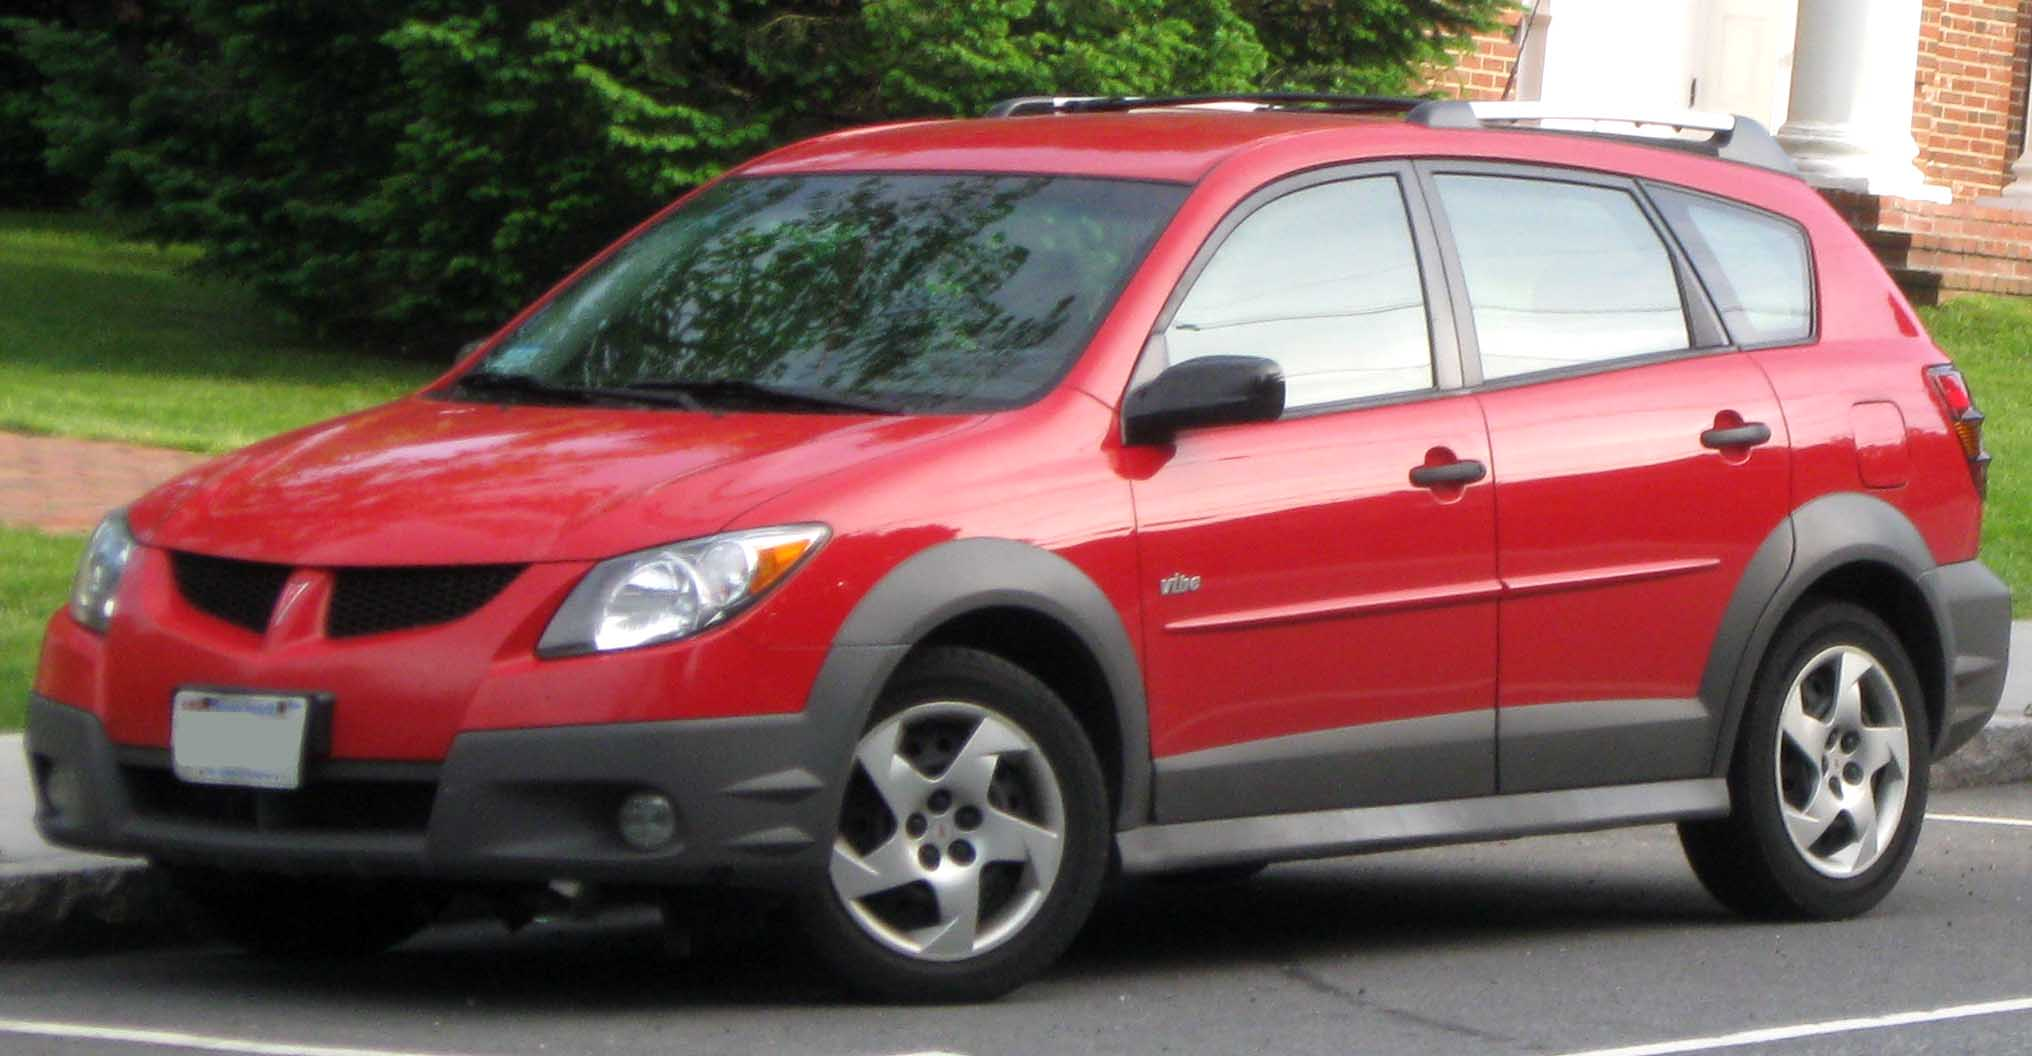 Pontiac Vibe red #2